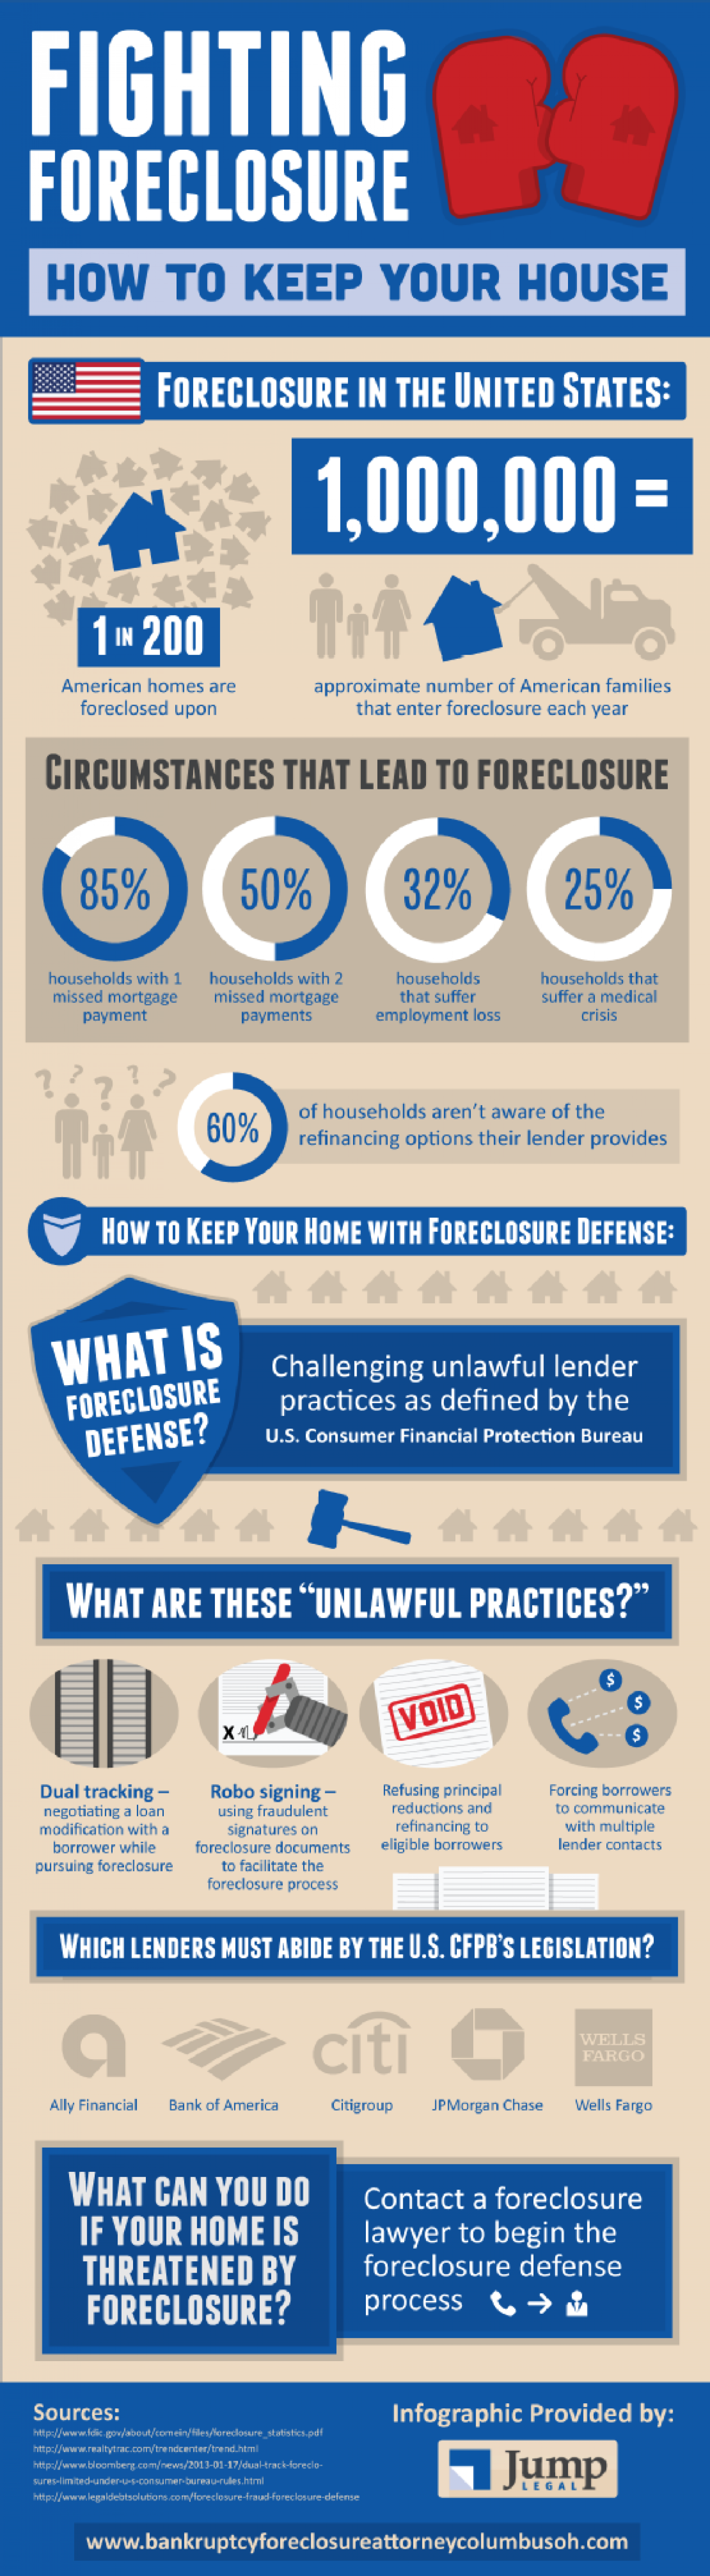 Fighting Foreclosure: How to Keep Your House Infographic